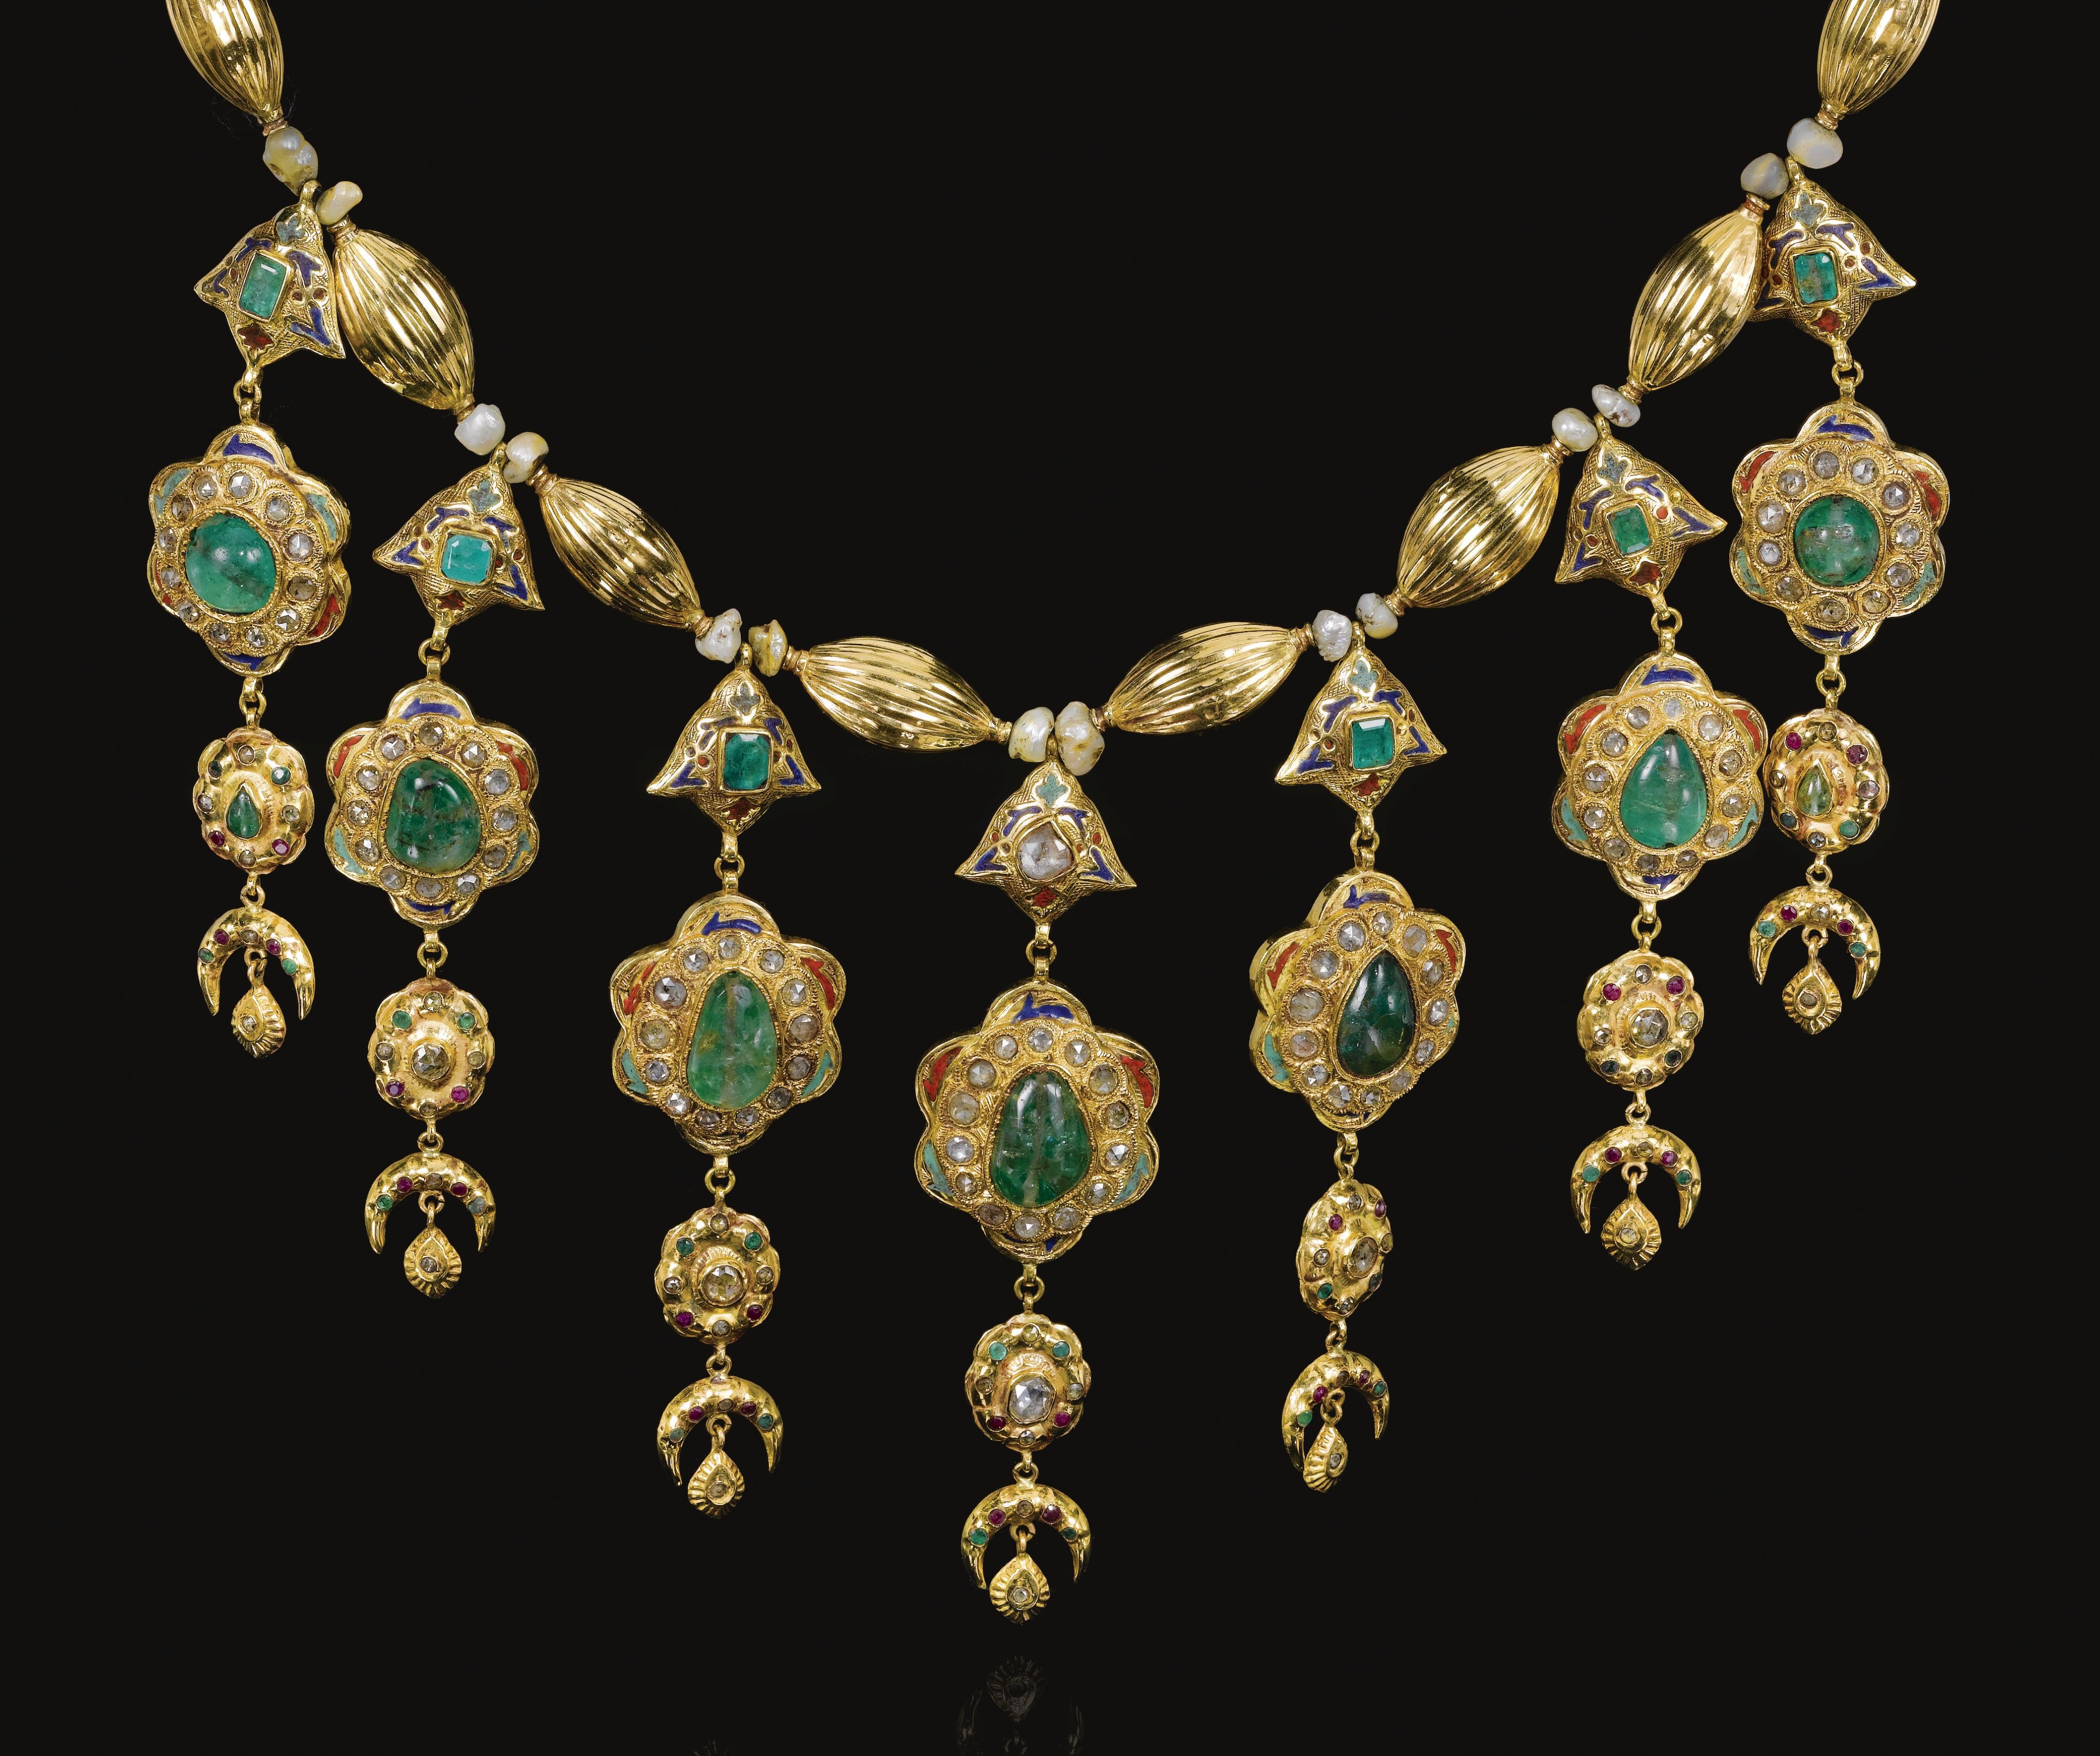 Cot In A Box Morocco Turquoise: A Gem-set Gold Necklace (lebba) And Earrings, Morocco